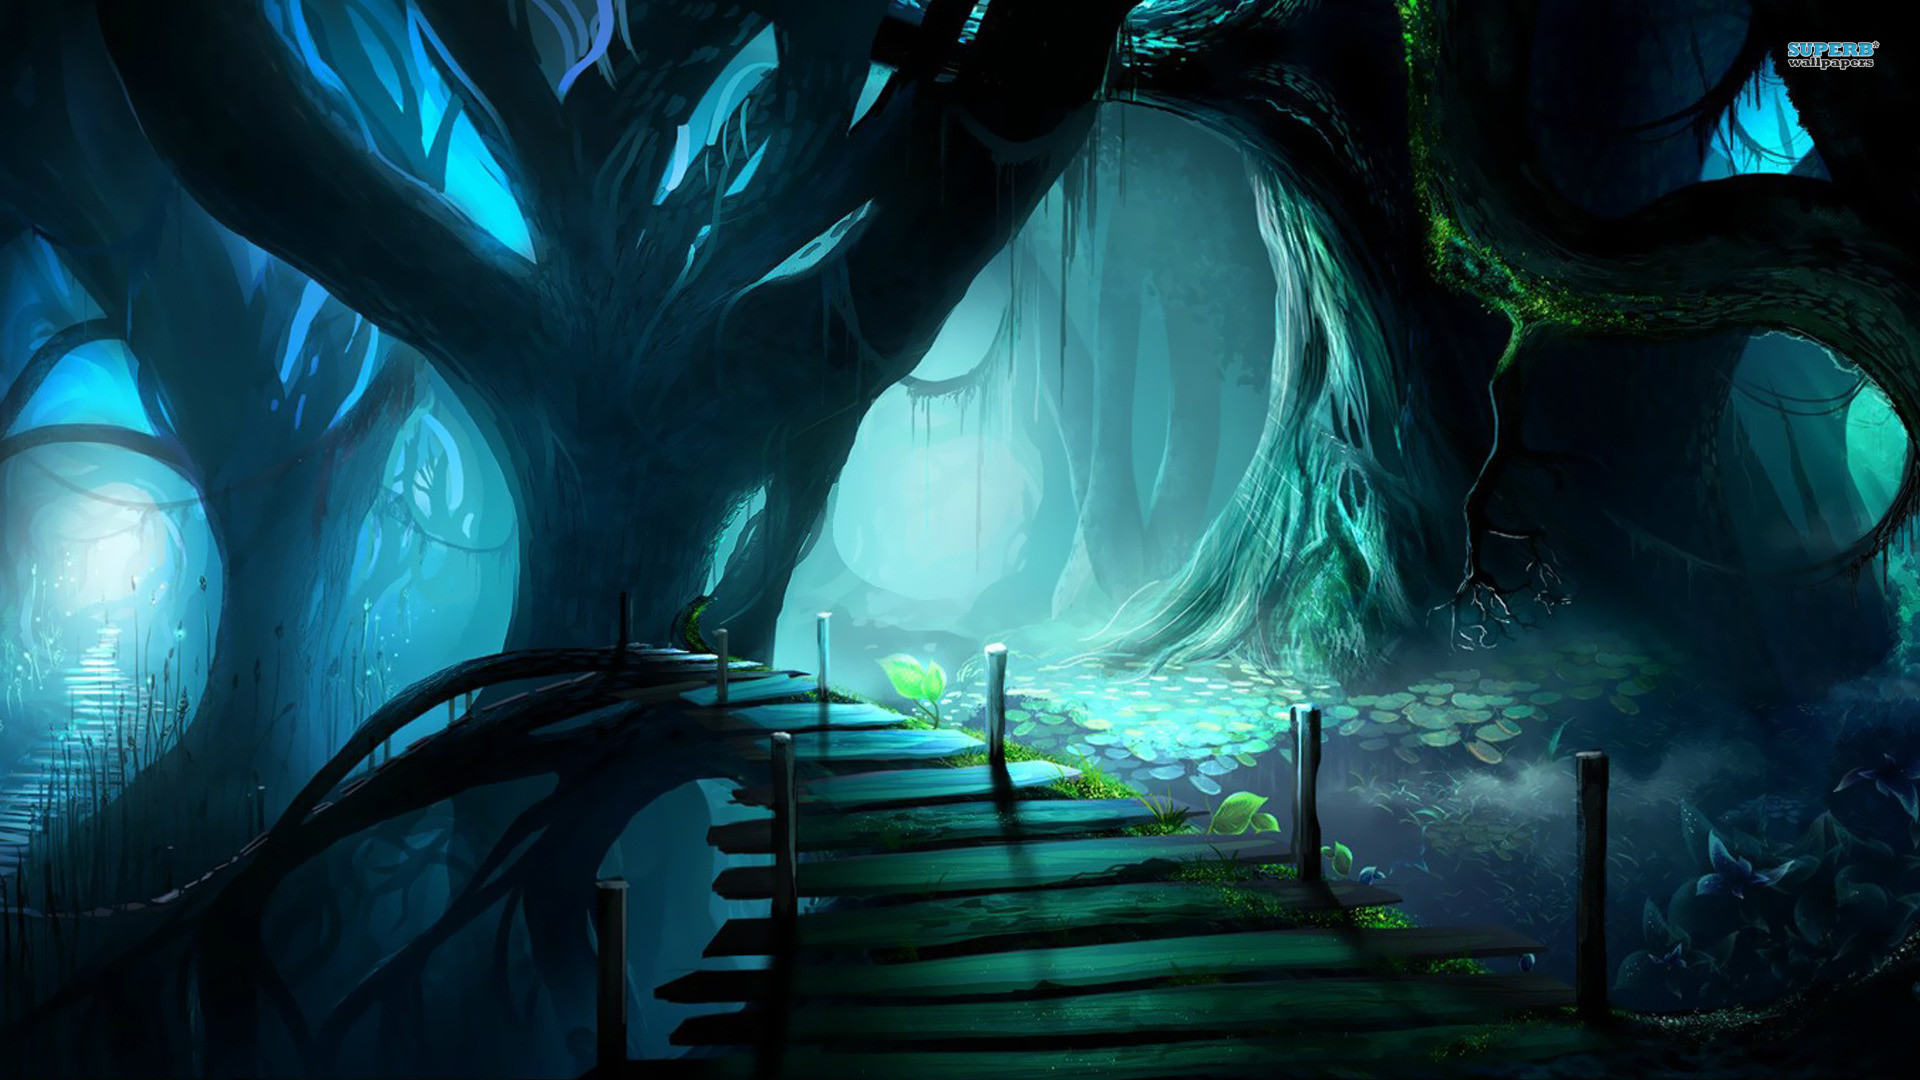 Druid forest / Path in a scary forest wallpaper